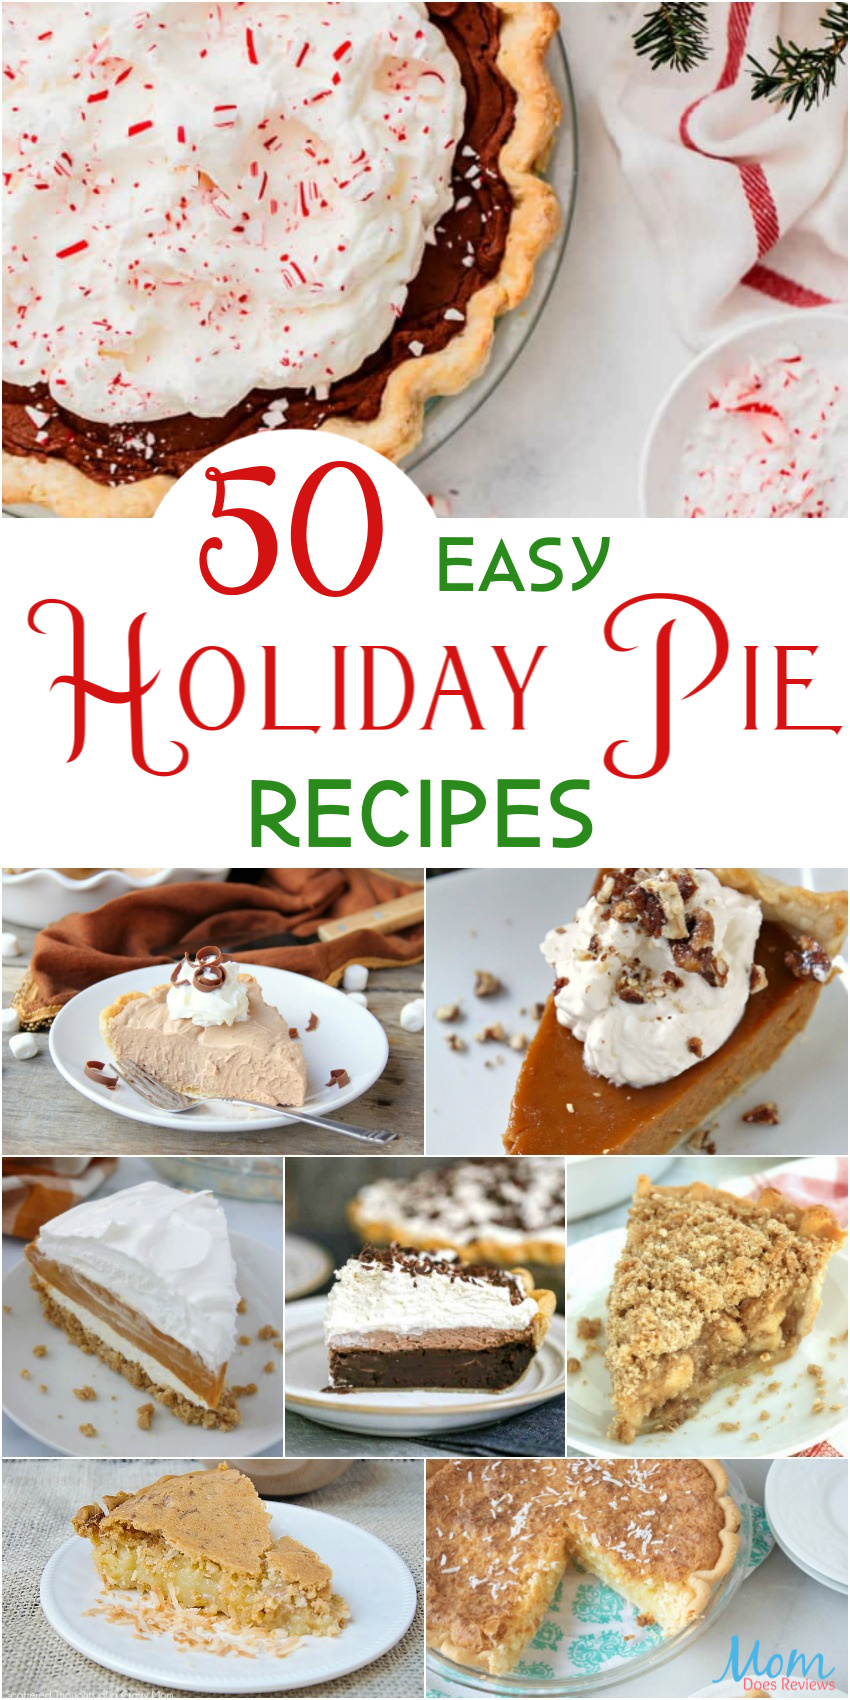 50 Easy Holiday Pie Recipes for a Sweet Addition to the Menu  #desserts #pies #sweets